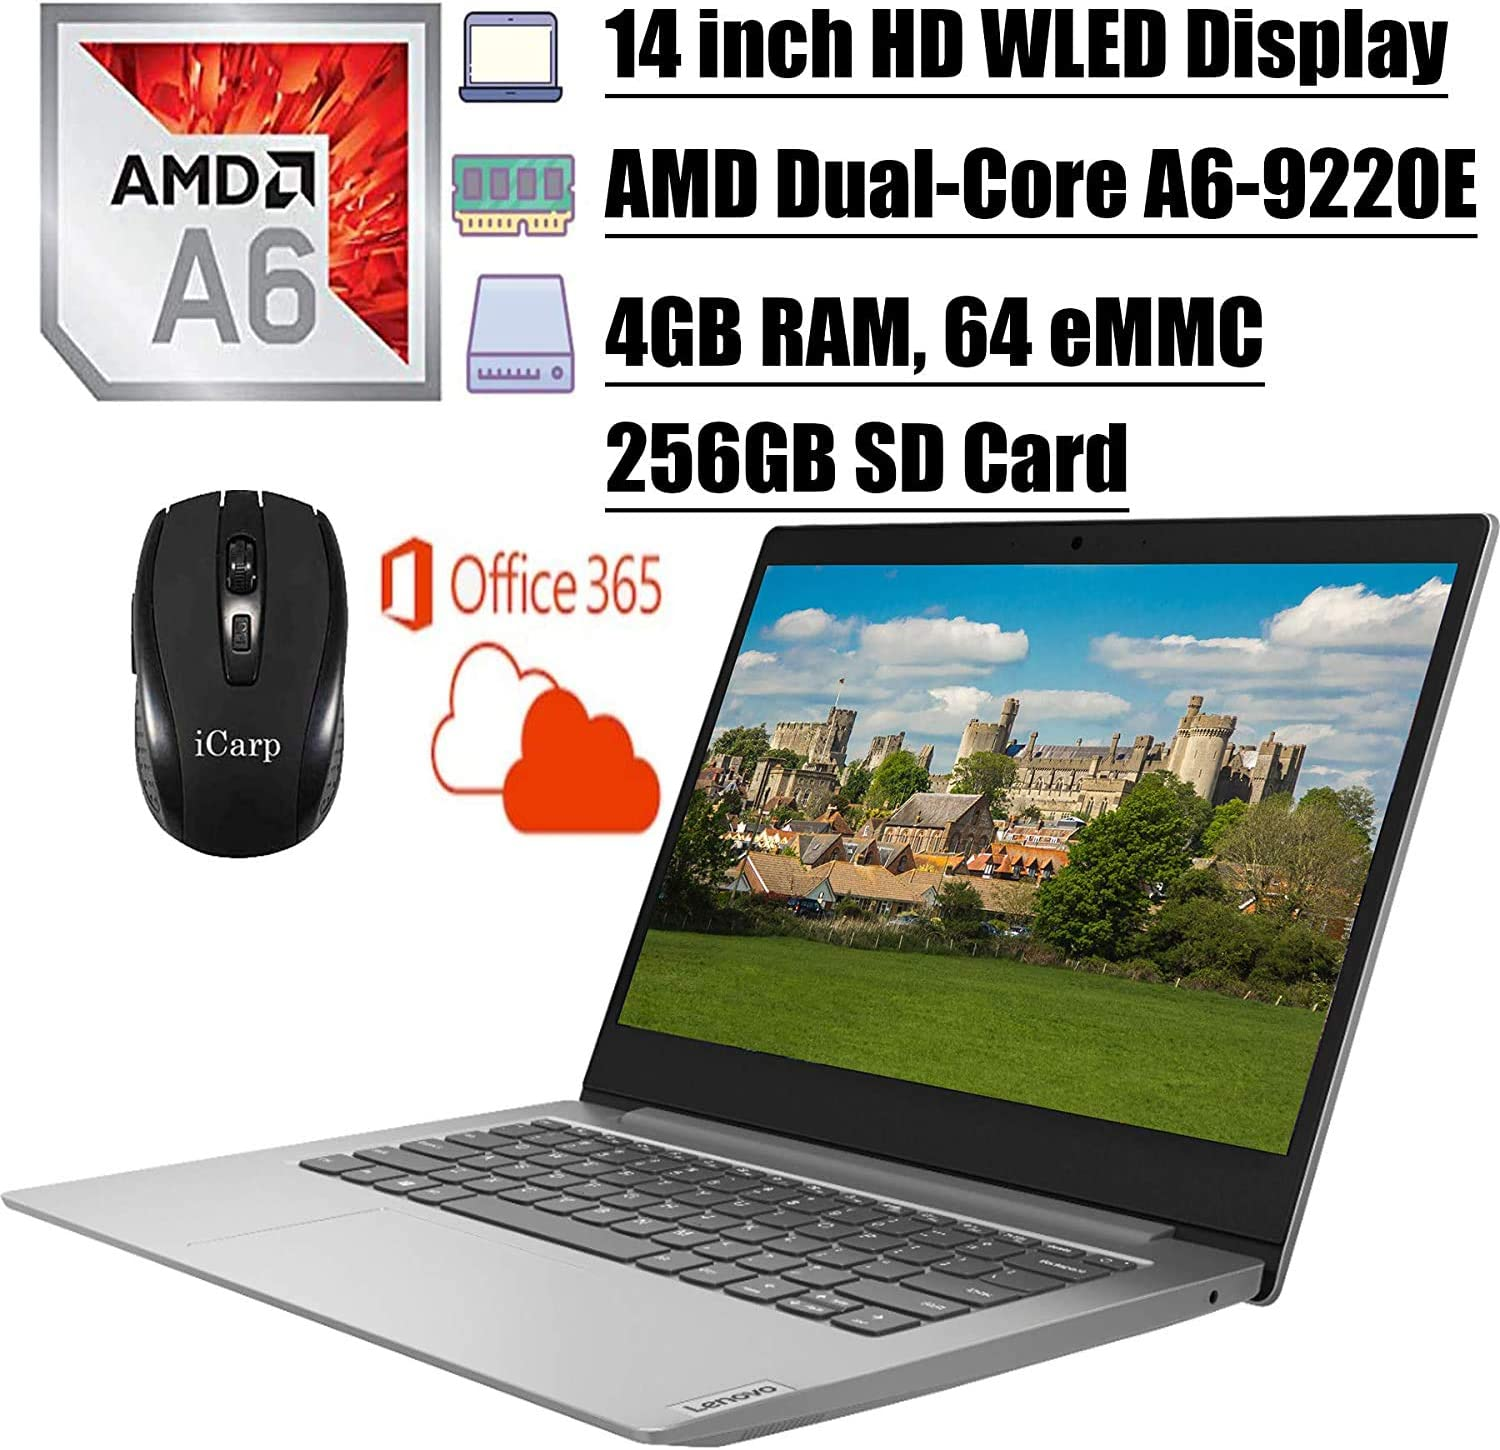 2020 Newest Lenovo IdeaPad 14 Laptop Computer 14 inch HD WLED Display AMD A6-9220e Processor 4GB DDR4 64GB eMMC + 256GB SD Card Office 365 Personal WiFi HDMI Webcam Win10 + iCarp Wireless Mouse